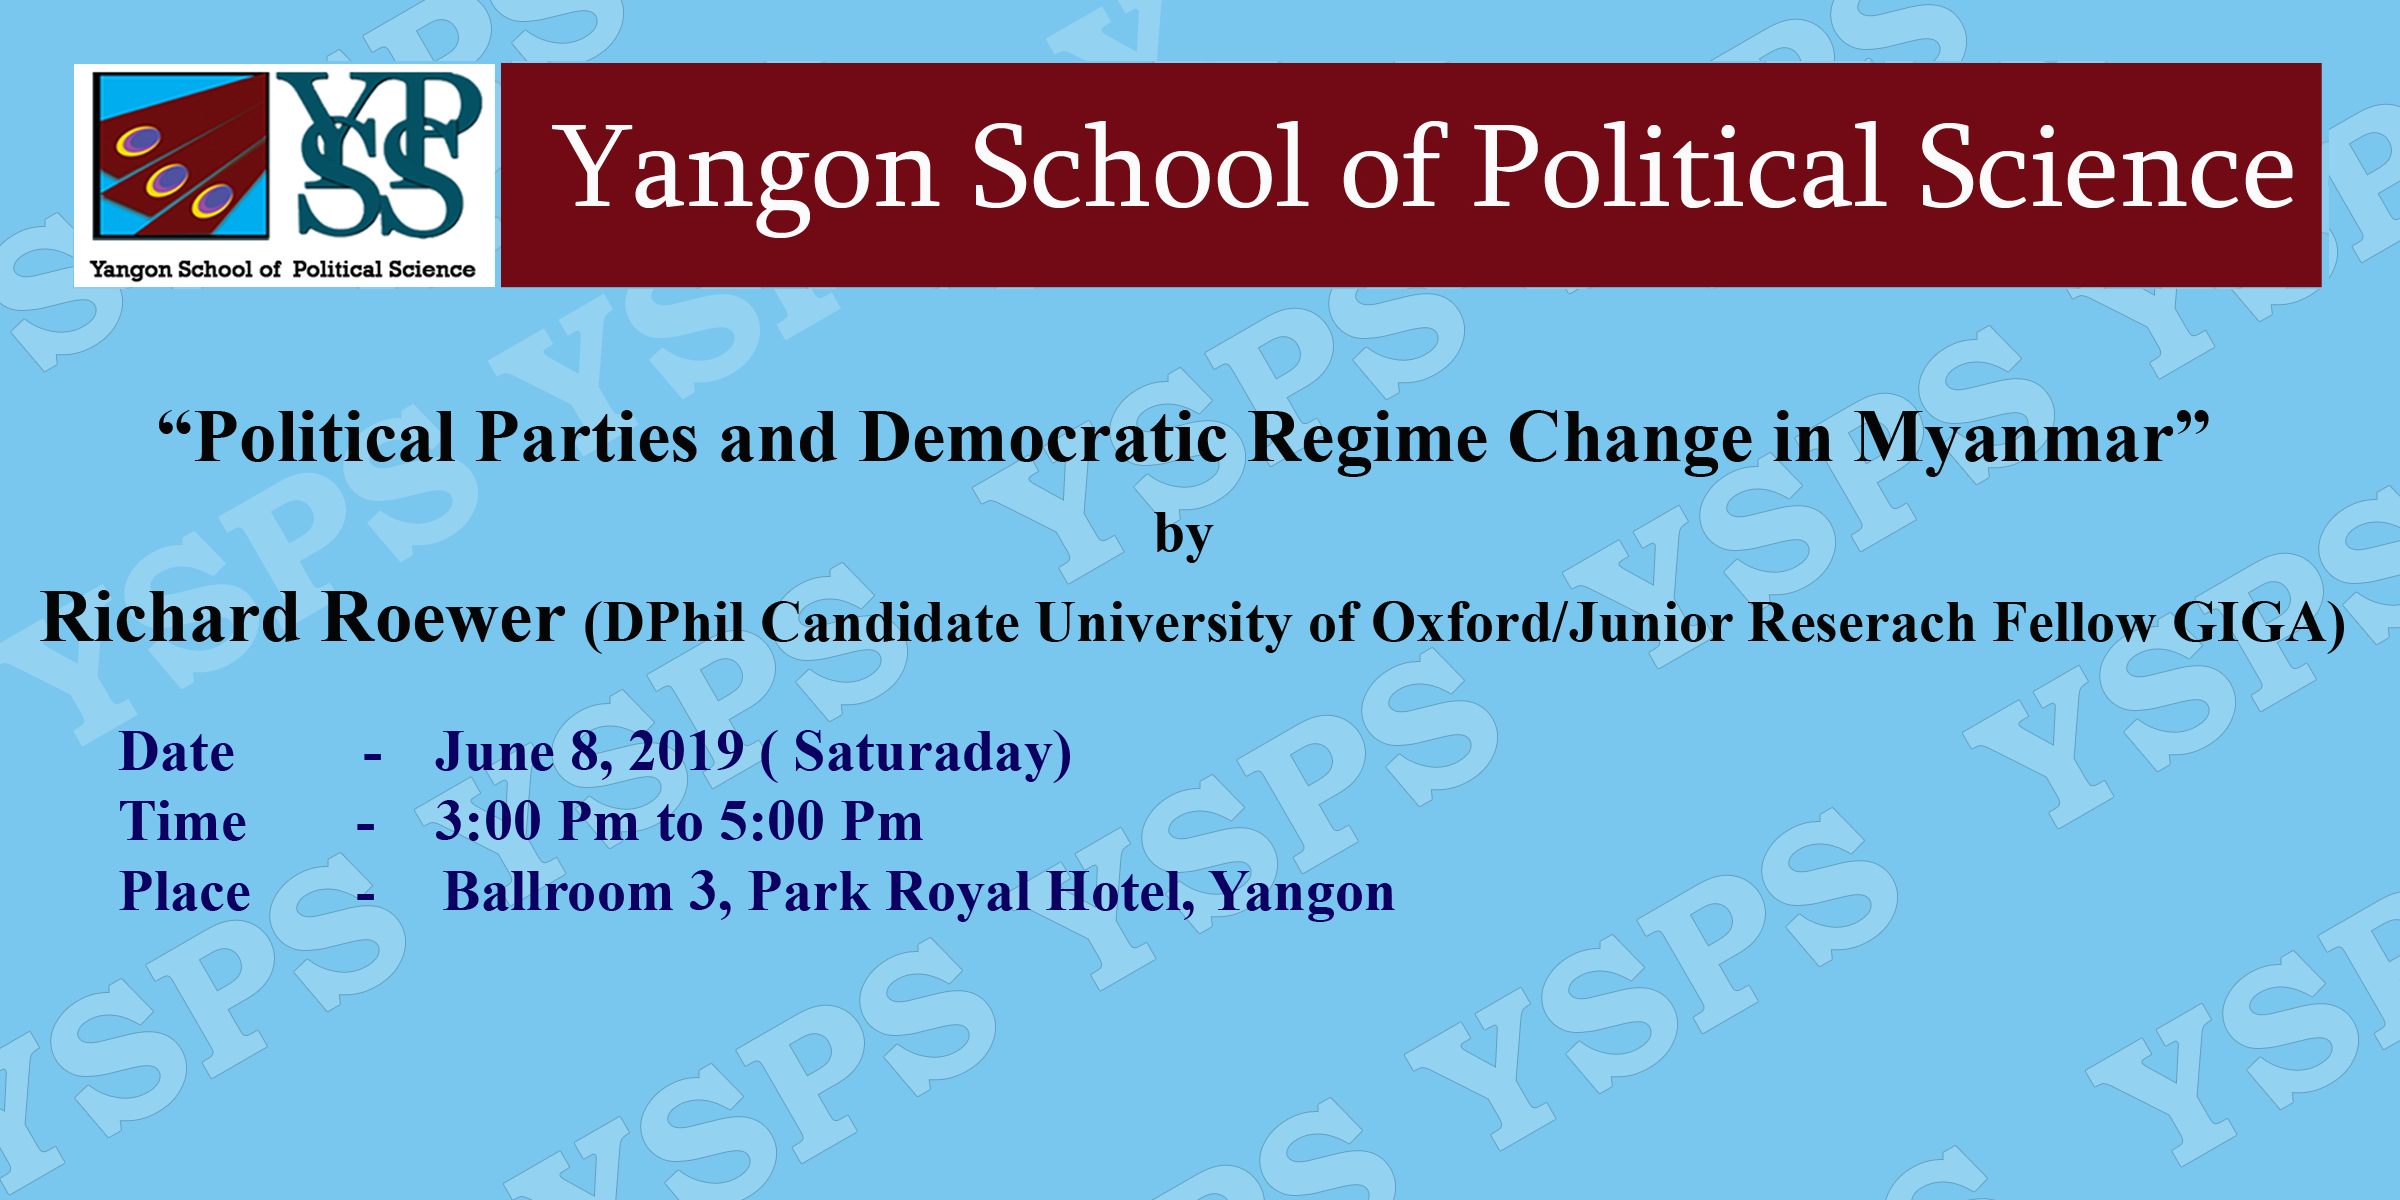 """""""Political Parties and Democratic Regime Change in Myanmar"""" by Richard Roewer (DPhil Candidate University of Oxford/Junior Reserach Fellow GIGA)"""